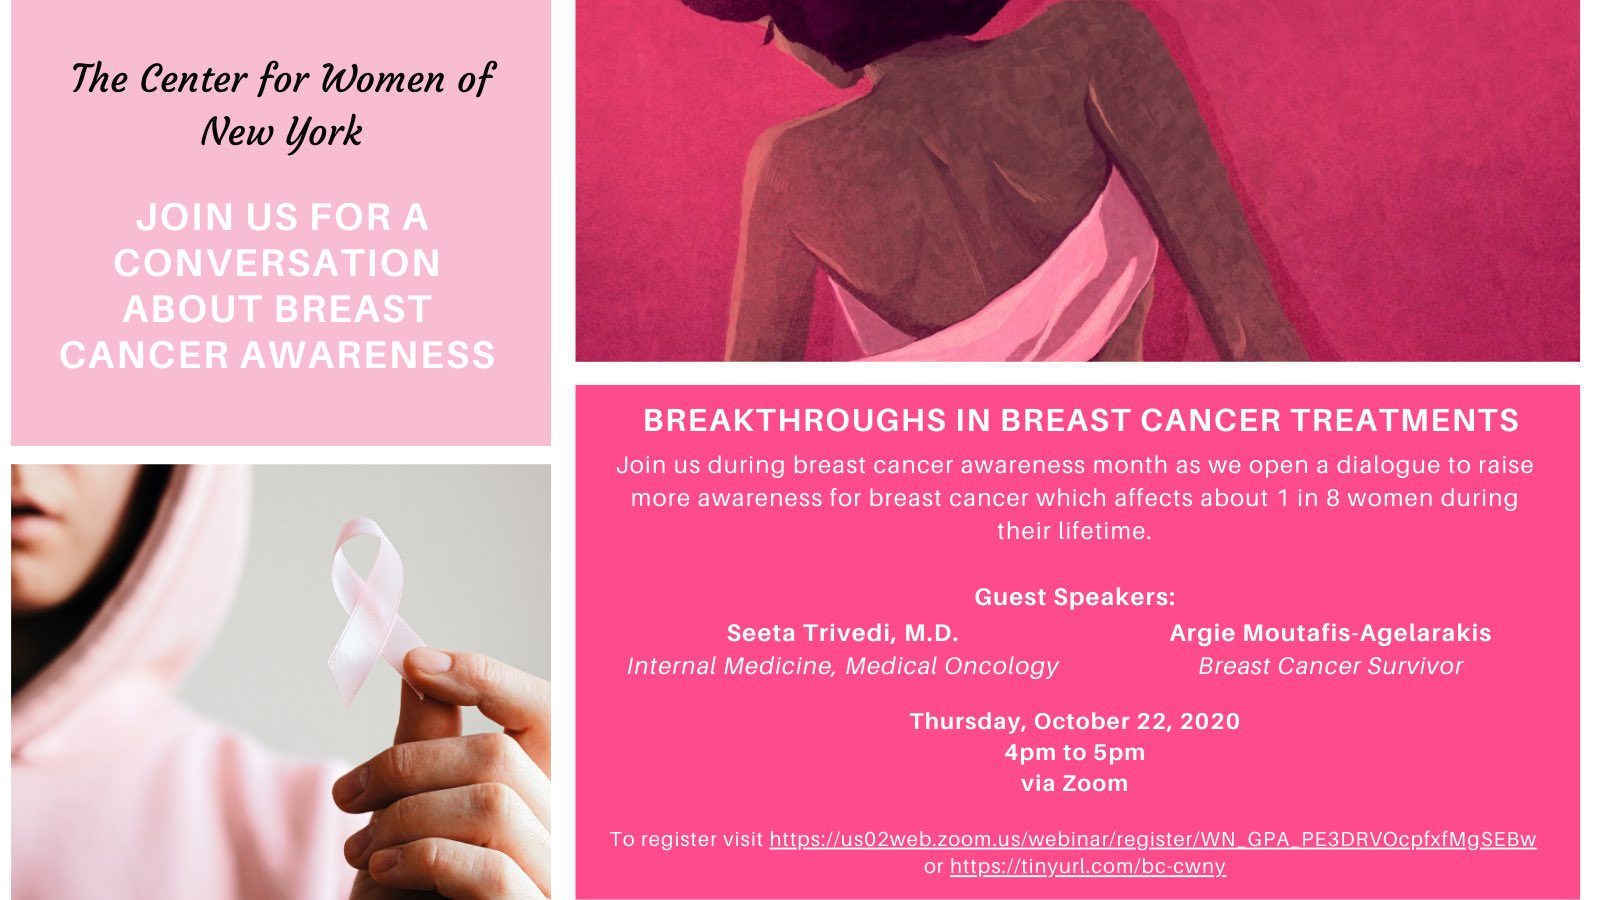 Flyer for Breakthroughs in Breast Cancer Treatments